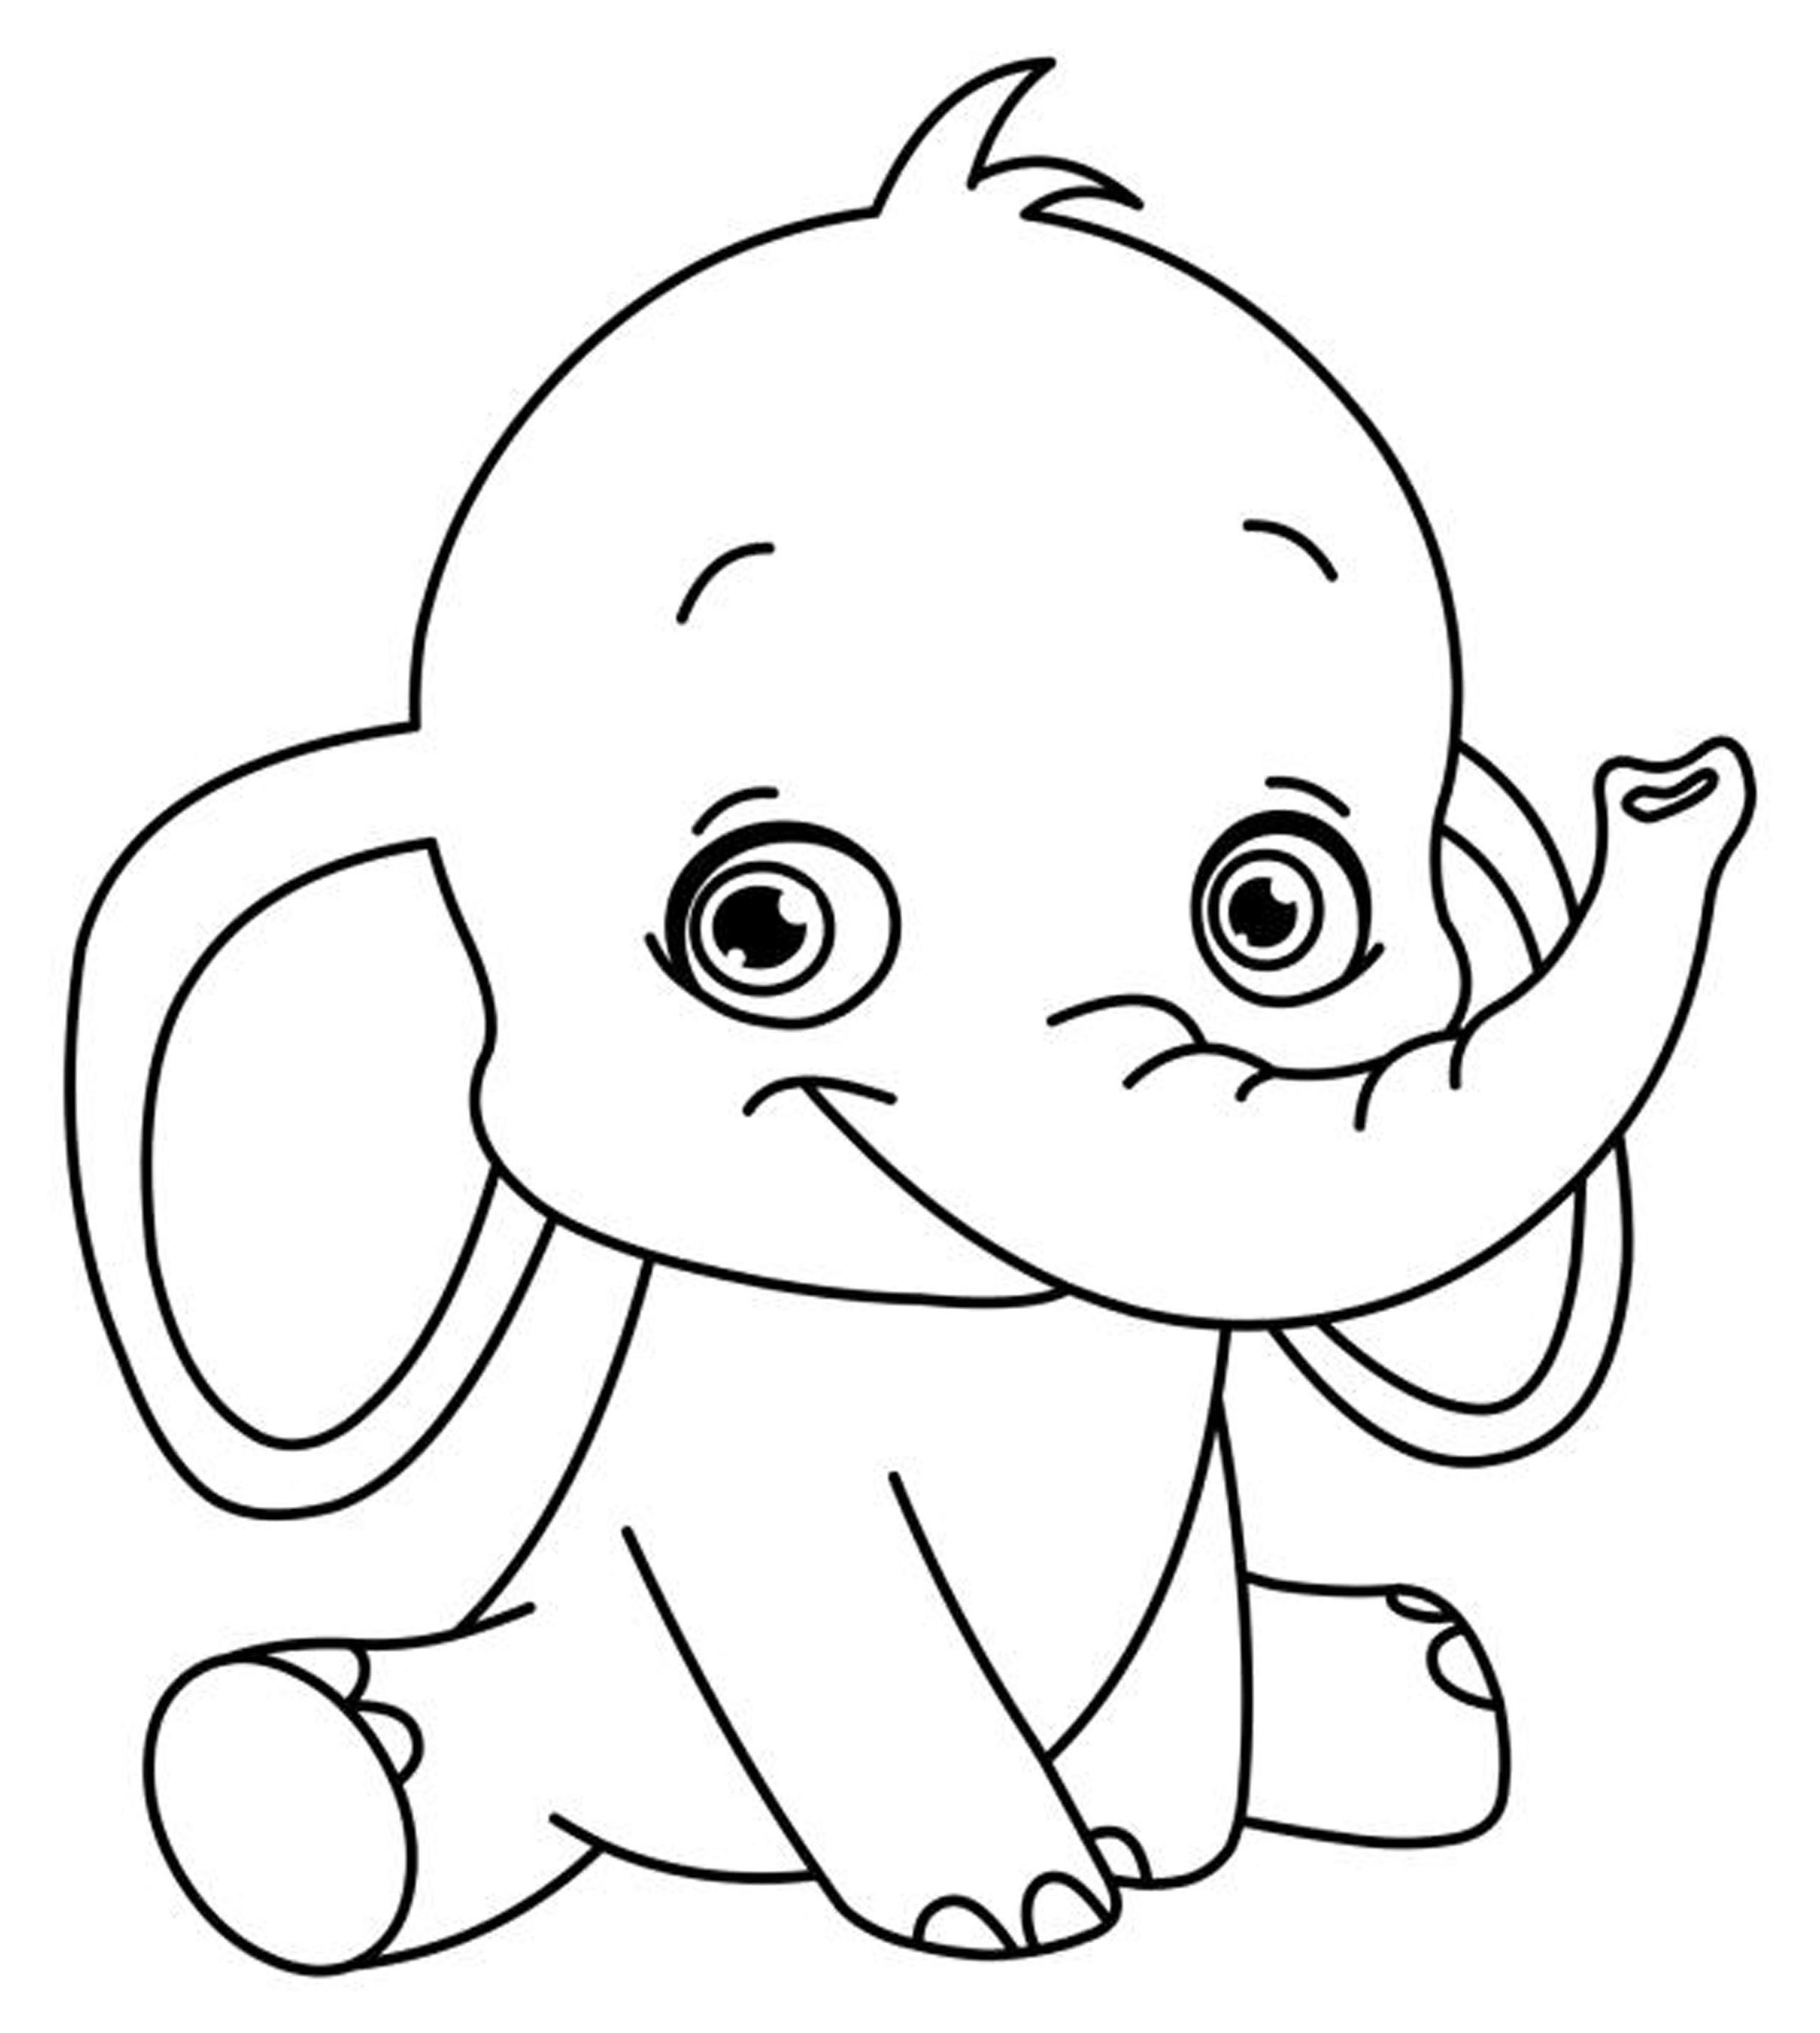 Best ideas about Easy Coloring Pages For Girls . Save or Pin Easy Disney Coloring Pages Snow White Girl Now.